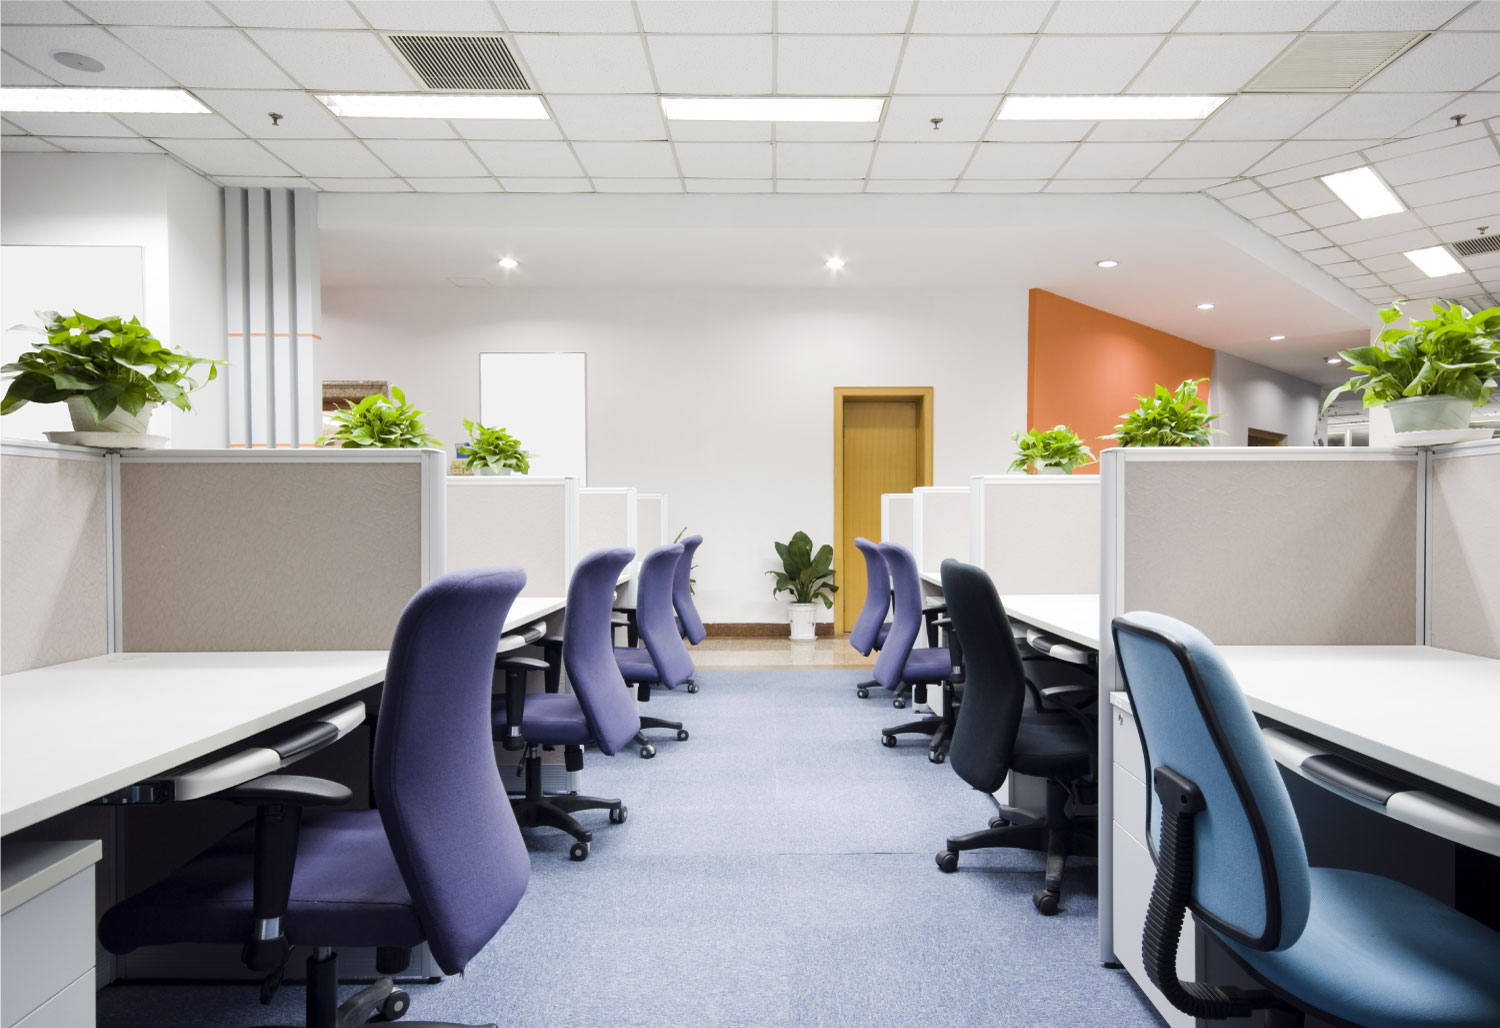 an interior view of a modern office space with desks and chairs